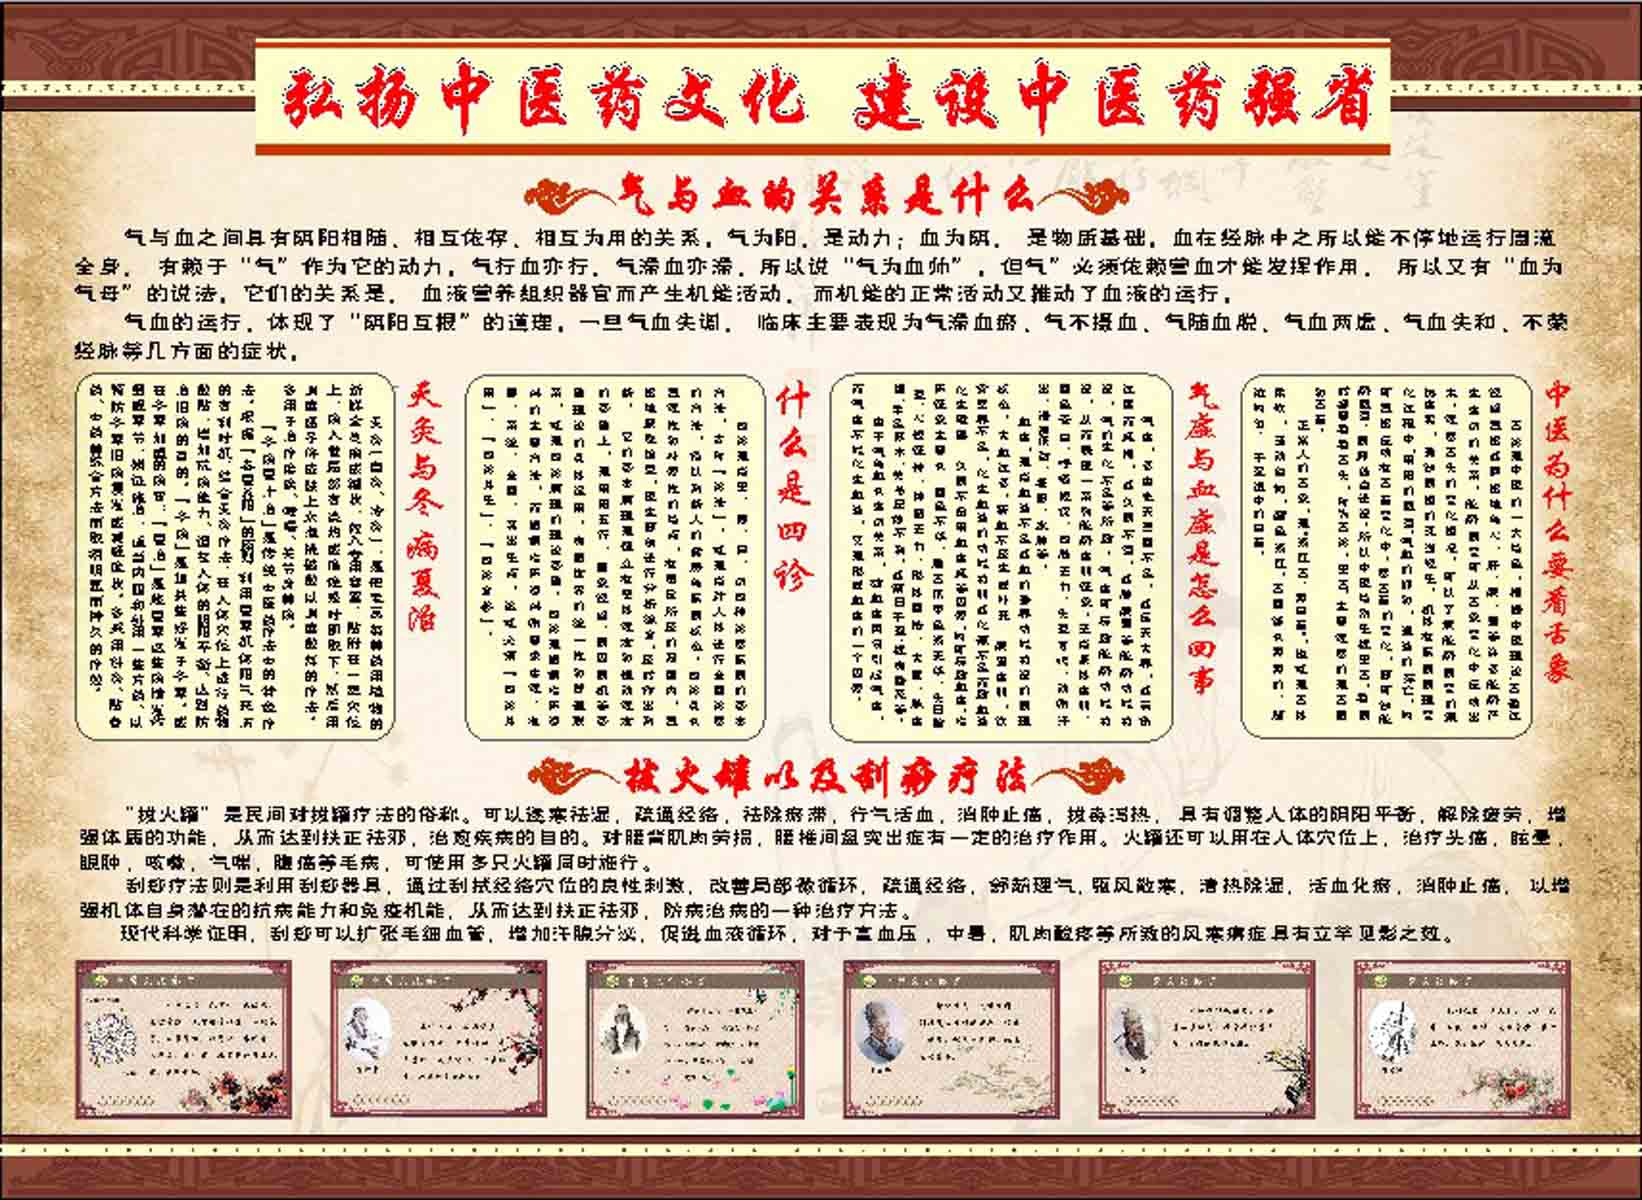 75 posters printed material culture tcm motto 632 tcm health care poster boards billboards cdr